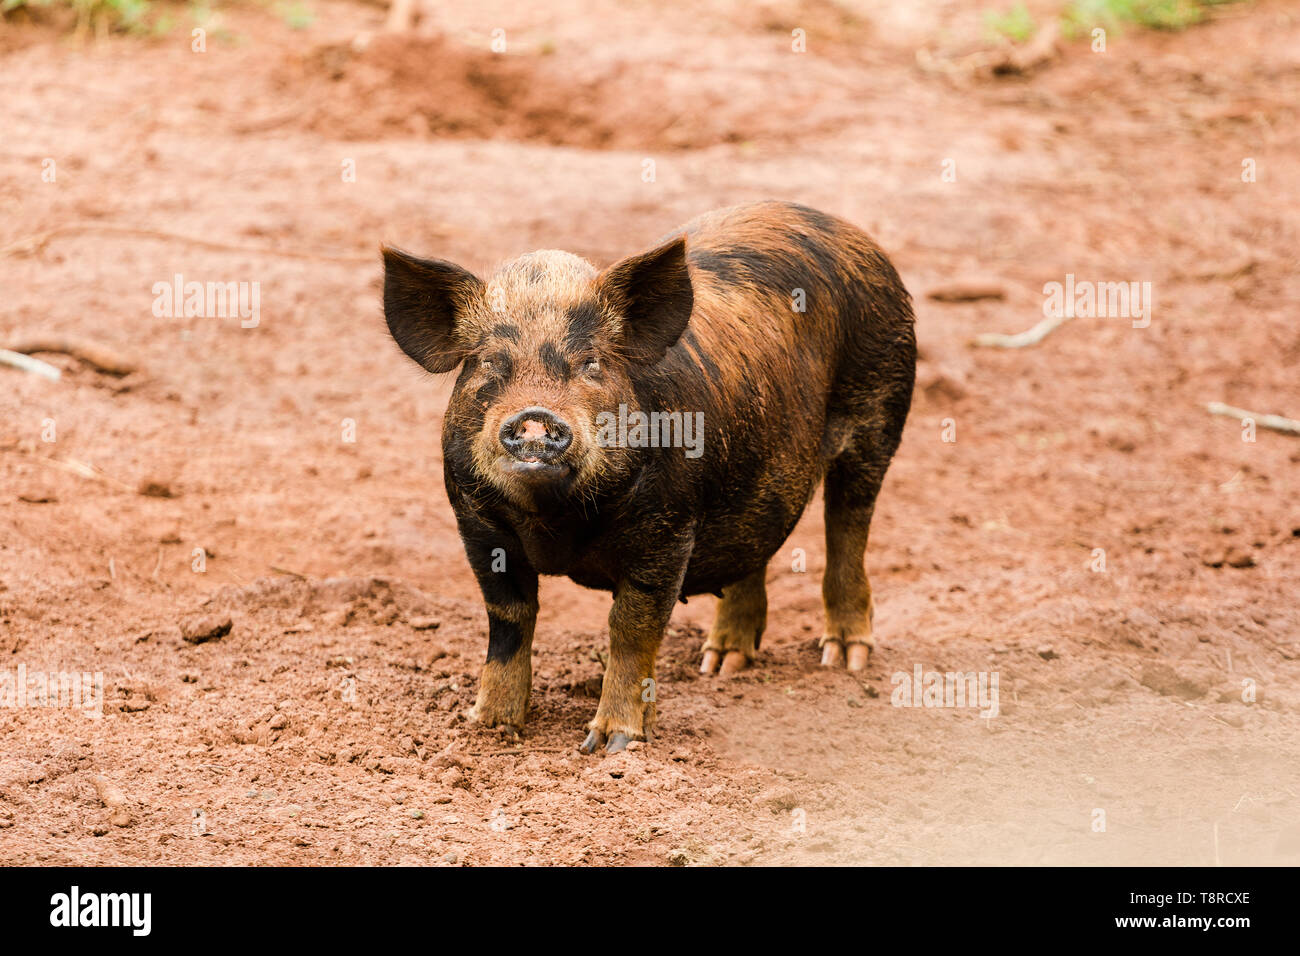 A caipira pig seen on a farm in Brazil. Livestock farming has a great relevance in Brazilian exports, in addition to supplying the domestic market. It is an economic activity developed in rural areas. Agriculture in Brazil is one of the main bases of the country's economy. Agriculture is an activity that is part of the primary sector where the land is cultivated and harvested for subsistence, export or trade. Stock Photo